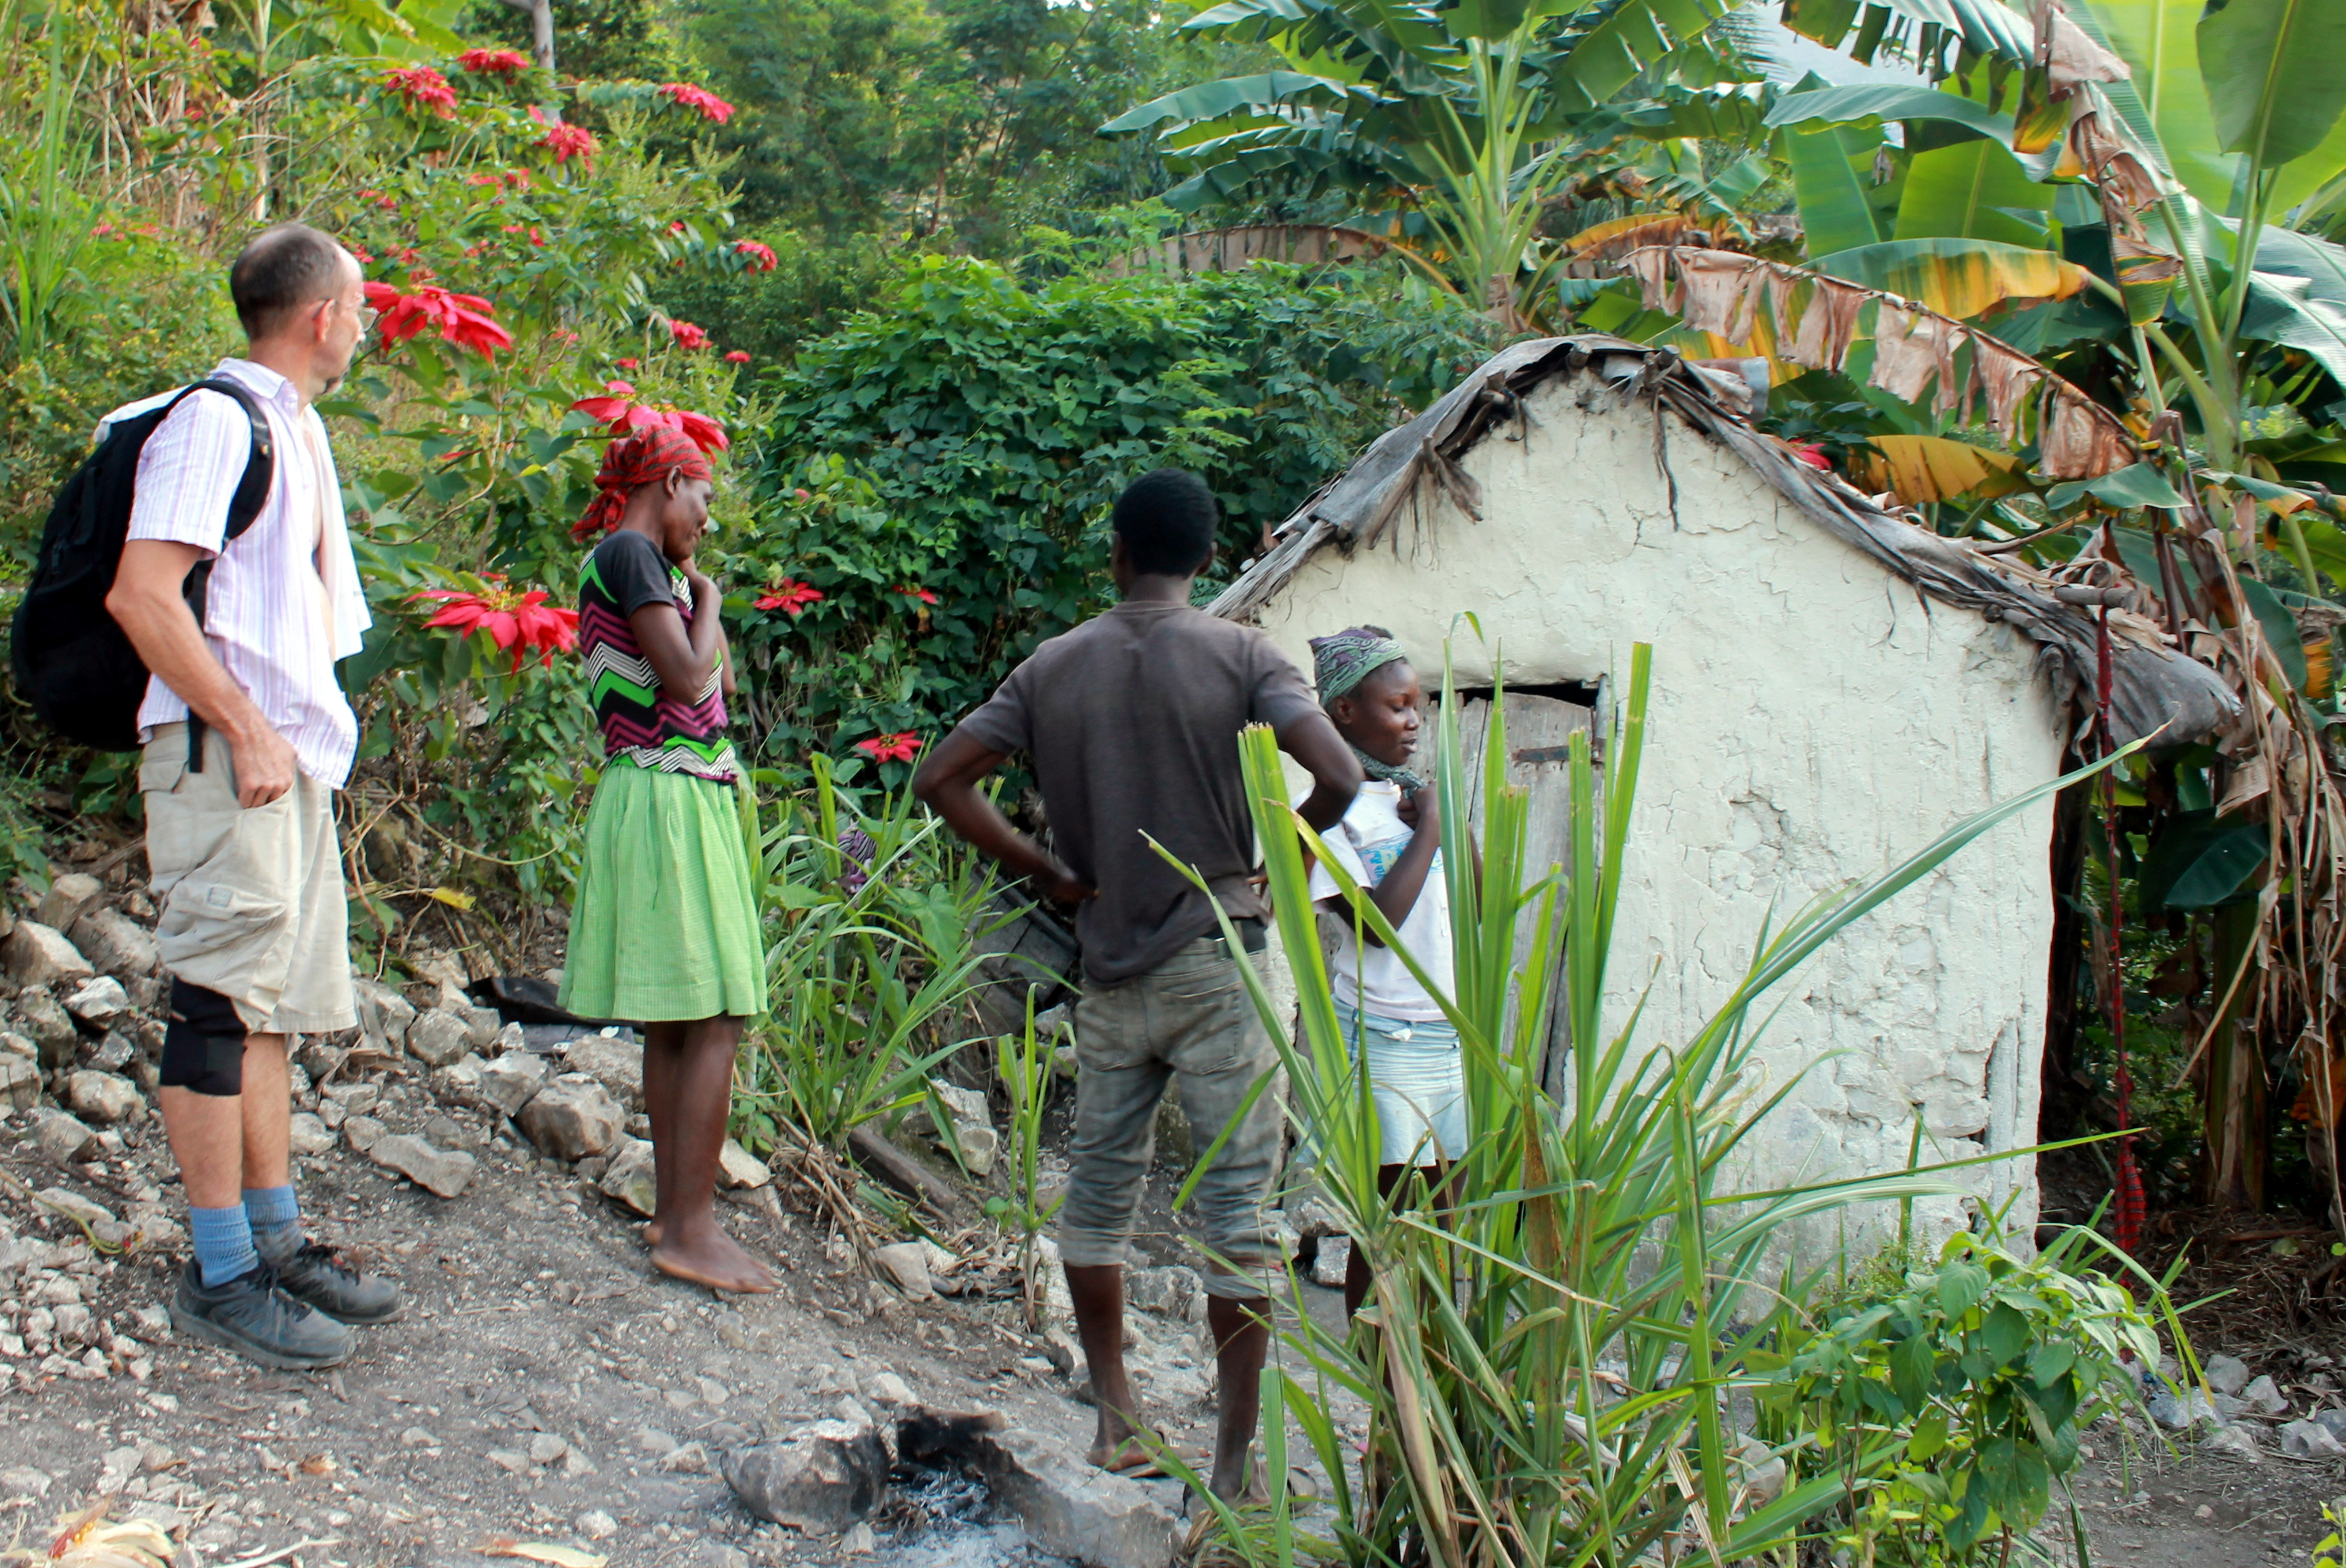 Hurricane damage in Haiti. This family in the mountains of Verettes lost half their home in the torrential downpour from the hurricane.